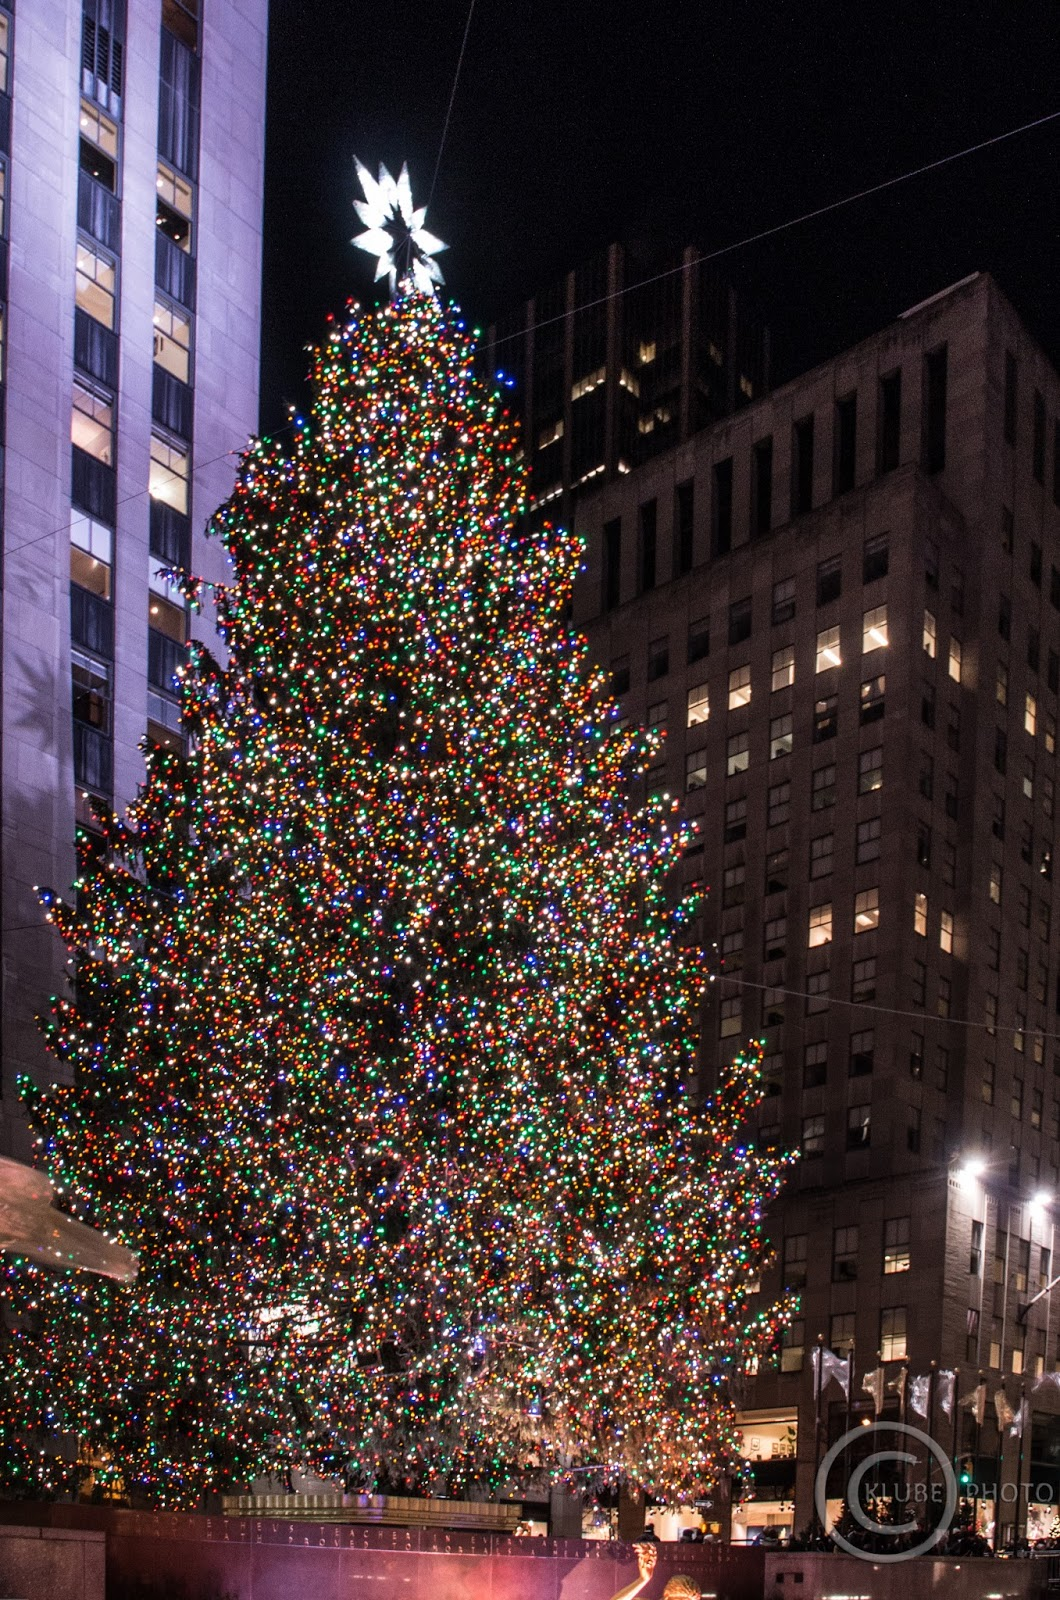 genickstarre nyc der weihnachtsbaum am rockefeller center. Black Bedroom Furniture Sets. Home Design Ideas